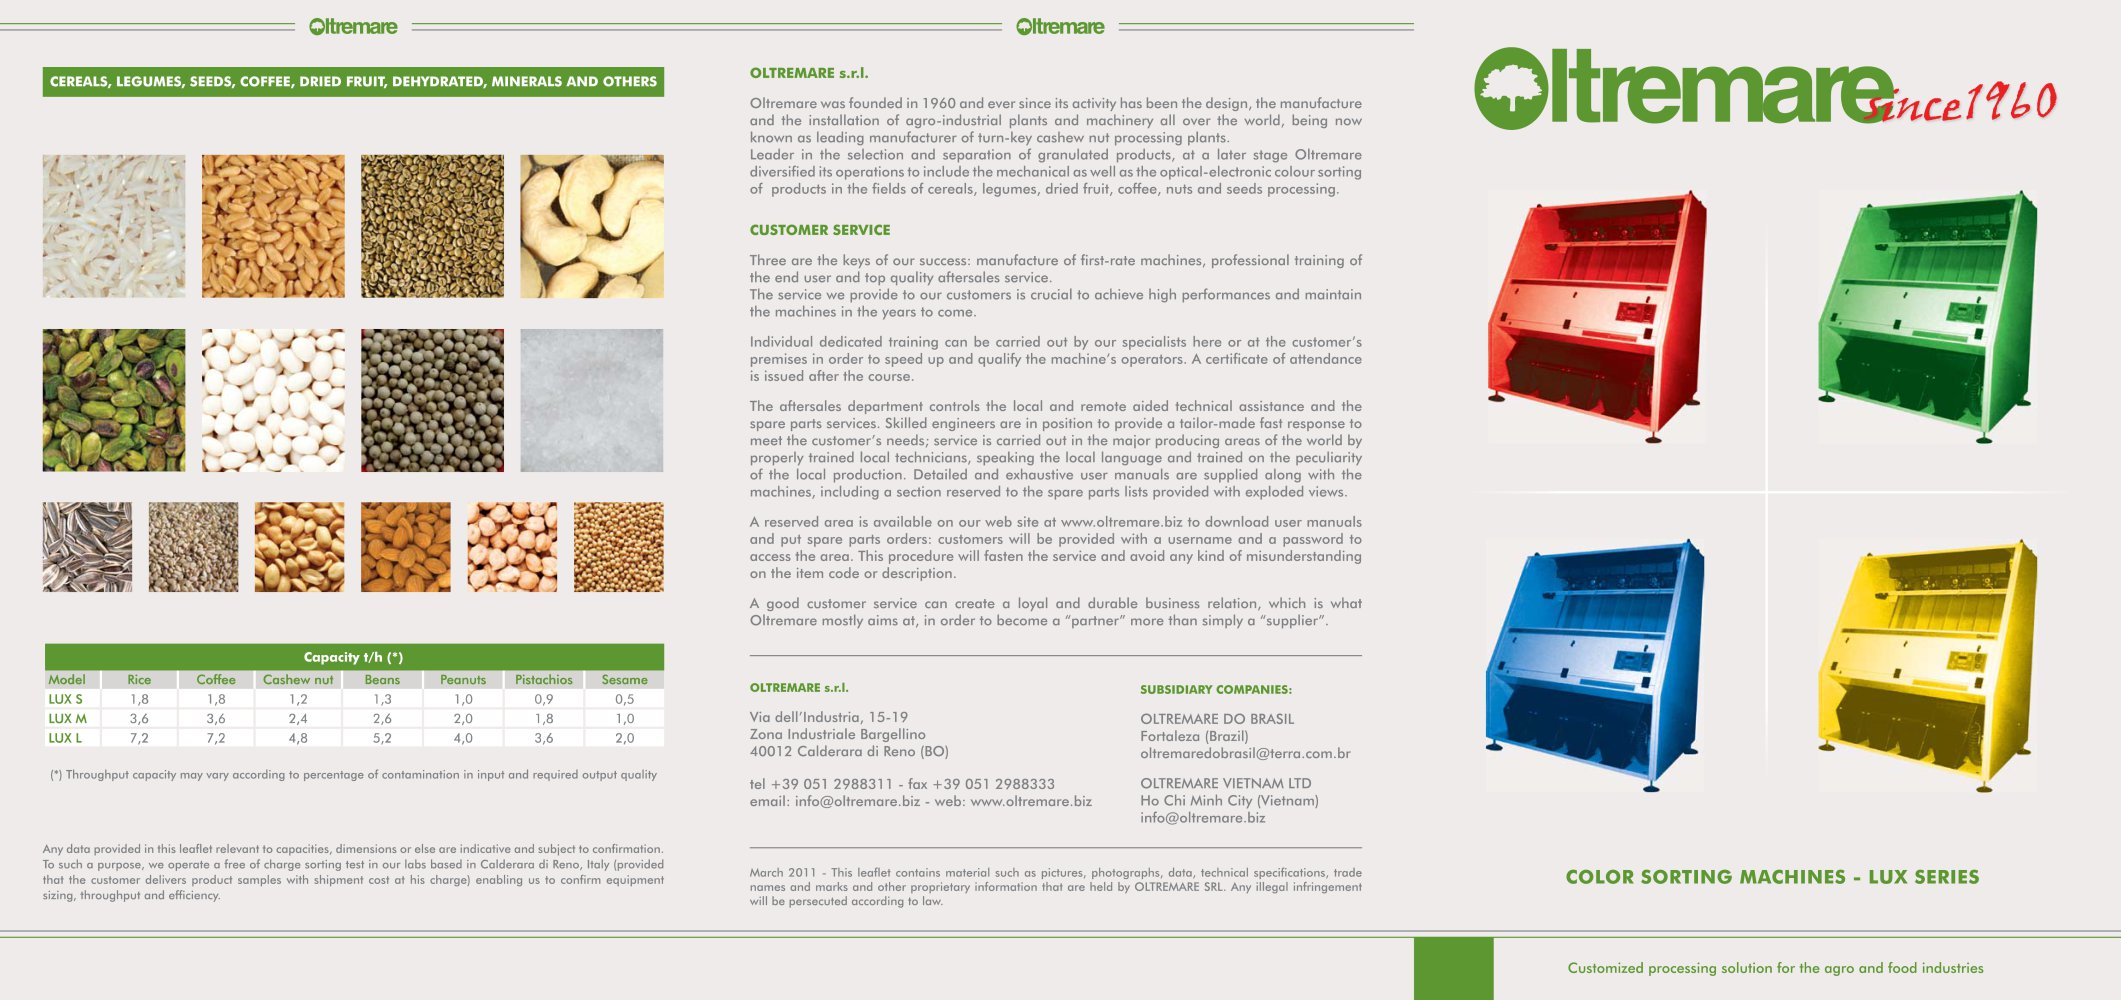 Colors for professional website - Color Sorting Machines Lux Series 1 2 Pages